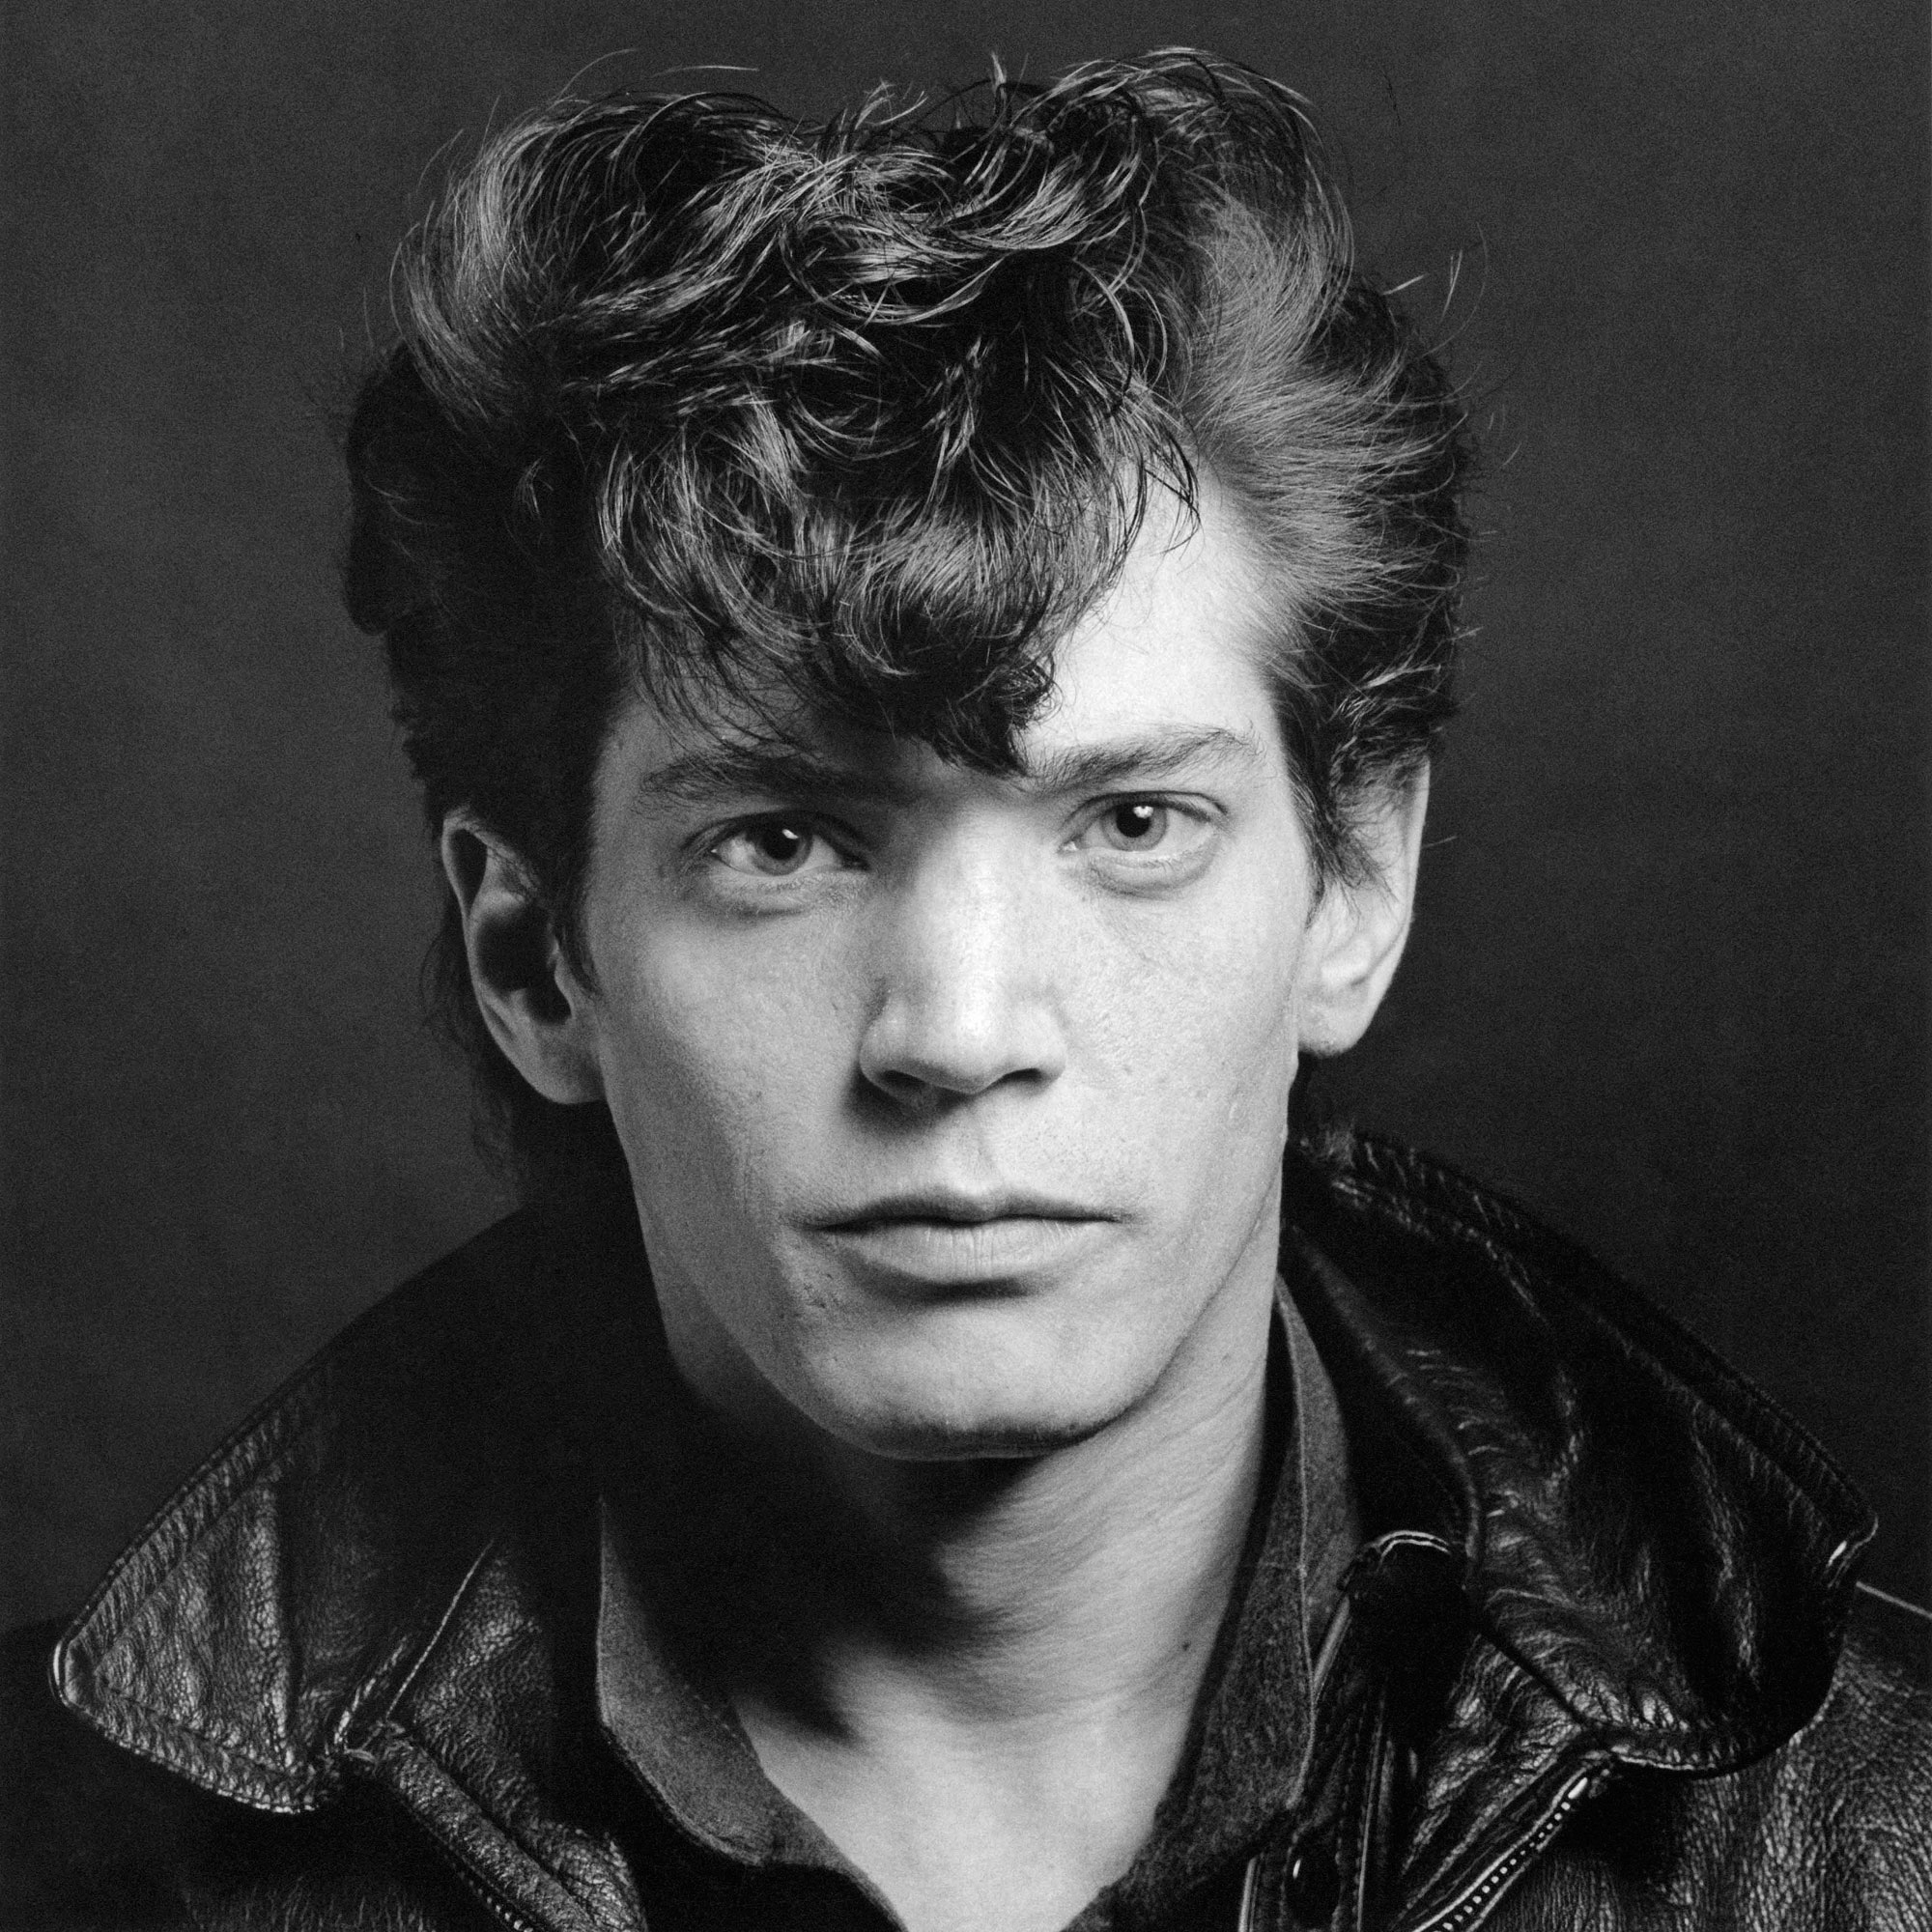 ‍foto: Robert Mapplethorpe, Self-Portrait (1980)